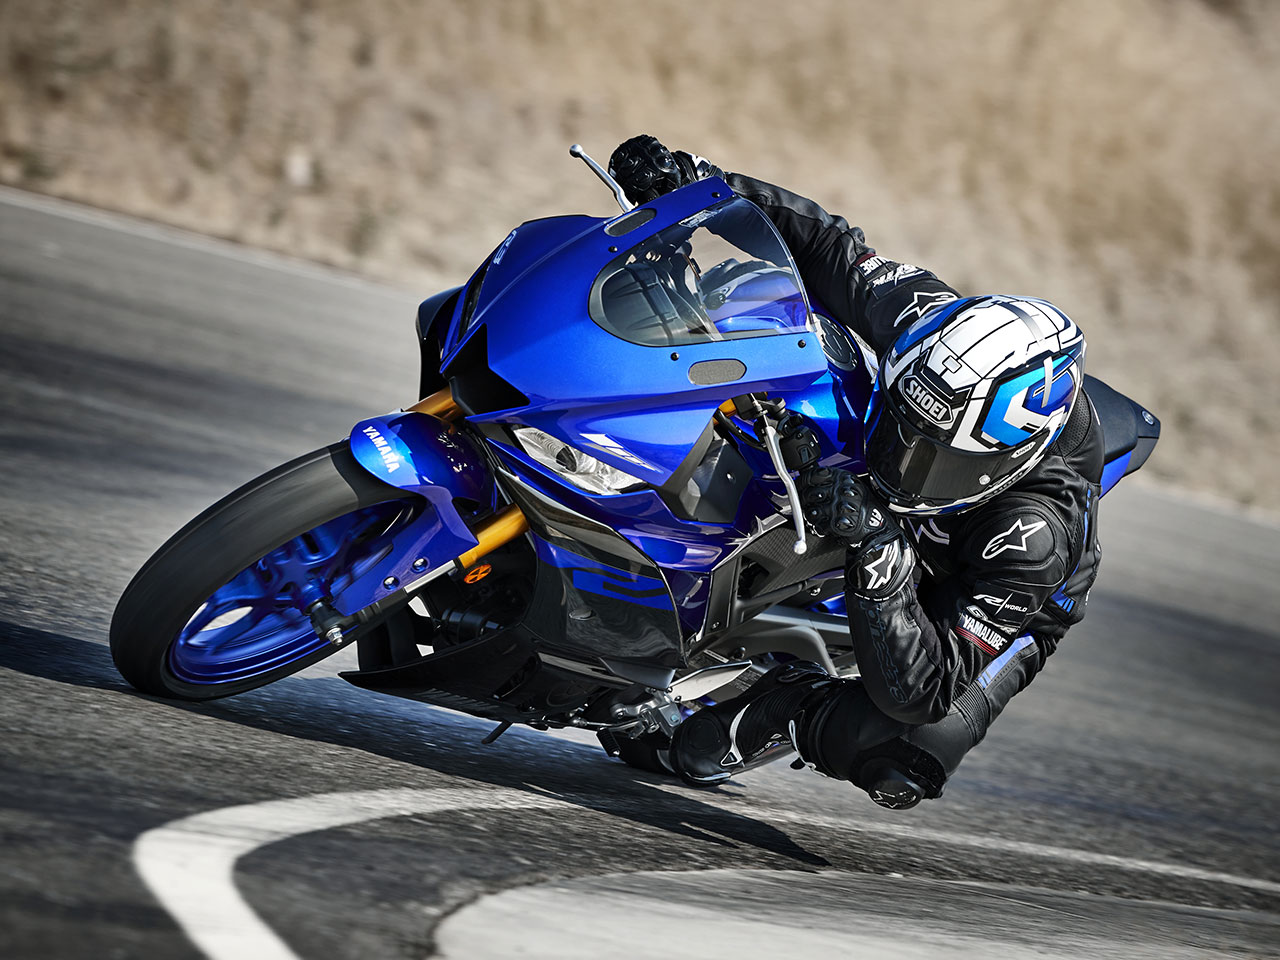 Yamaha YZF-R3 in yamaha blu colour being ridden on road